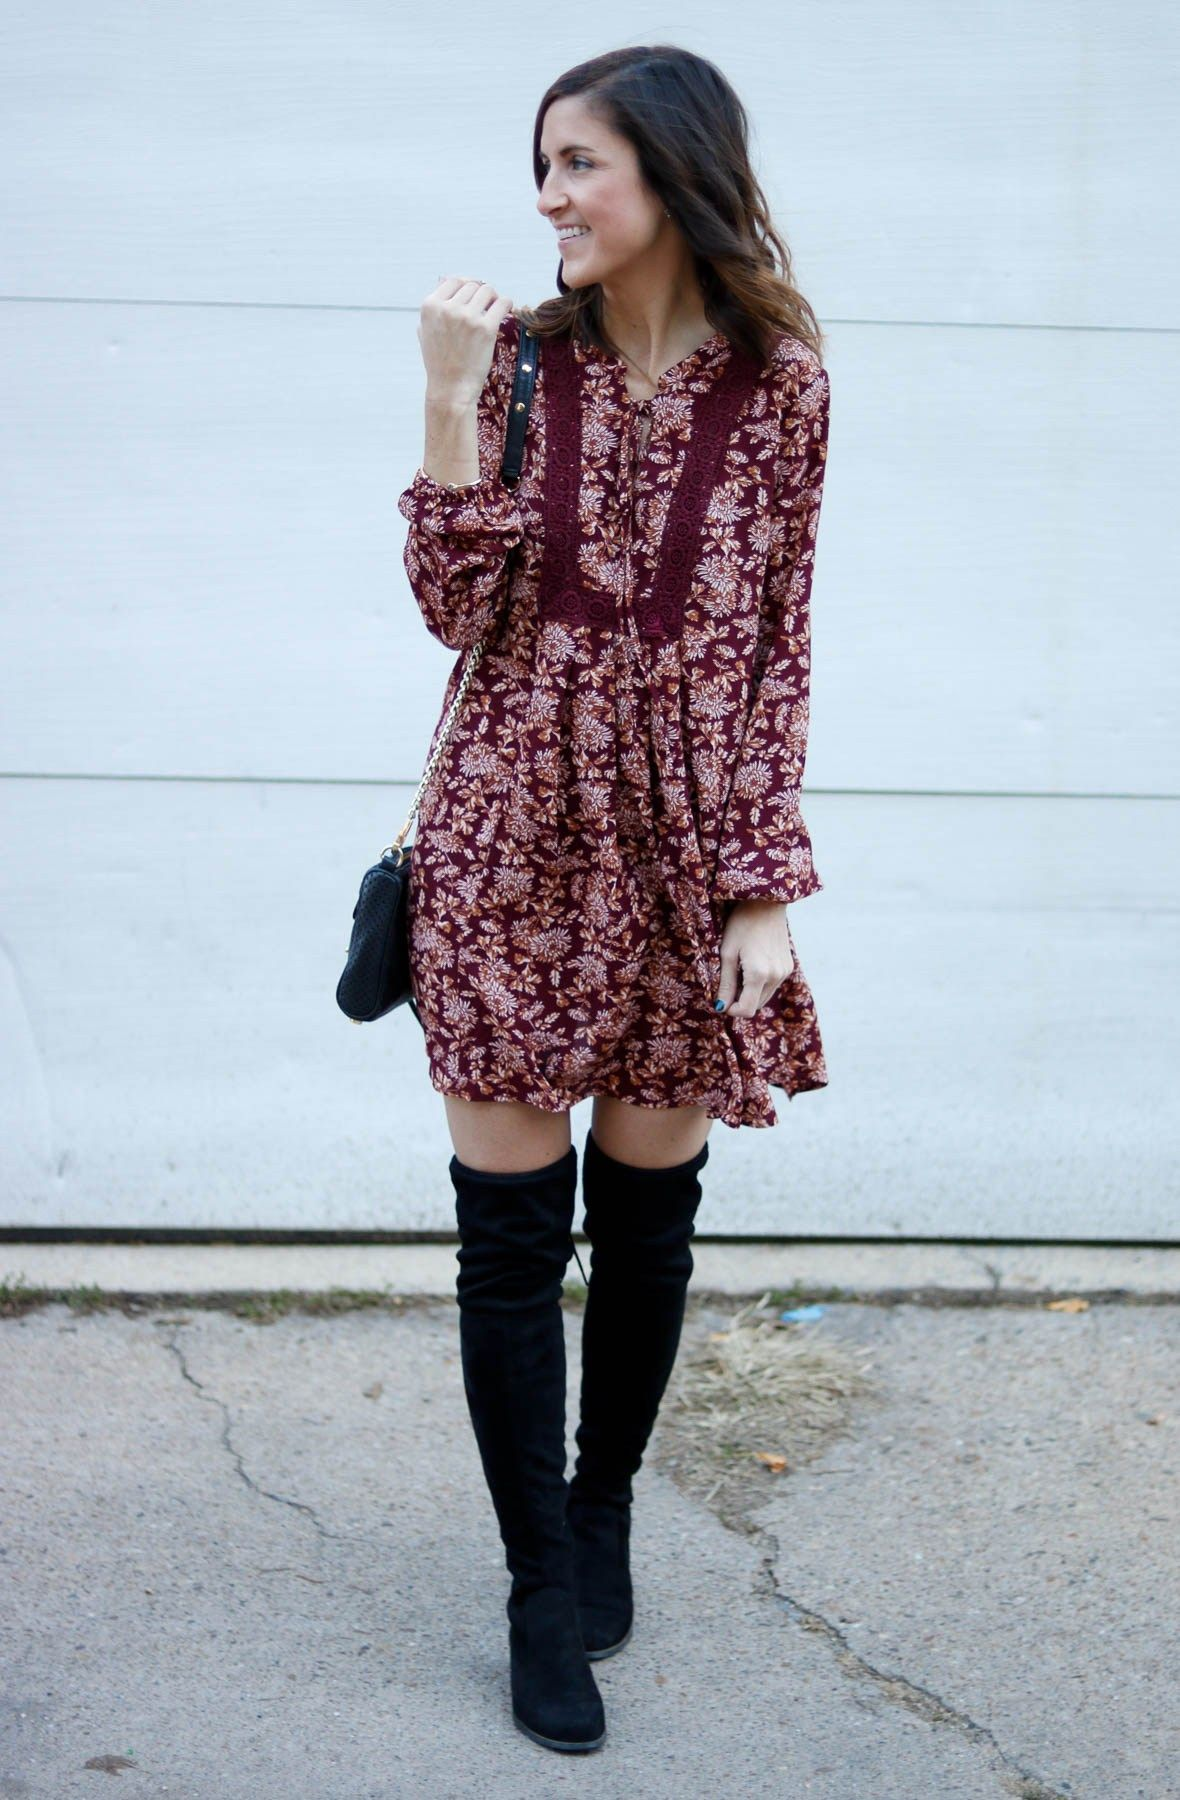 Maroon dress paired with over the knee boots.